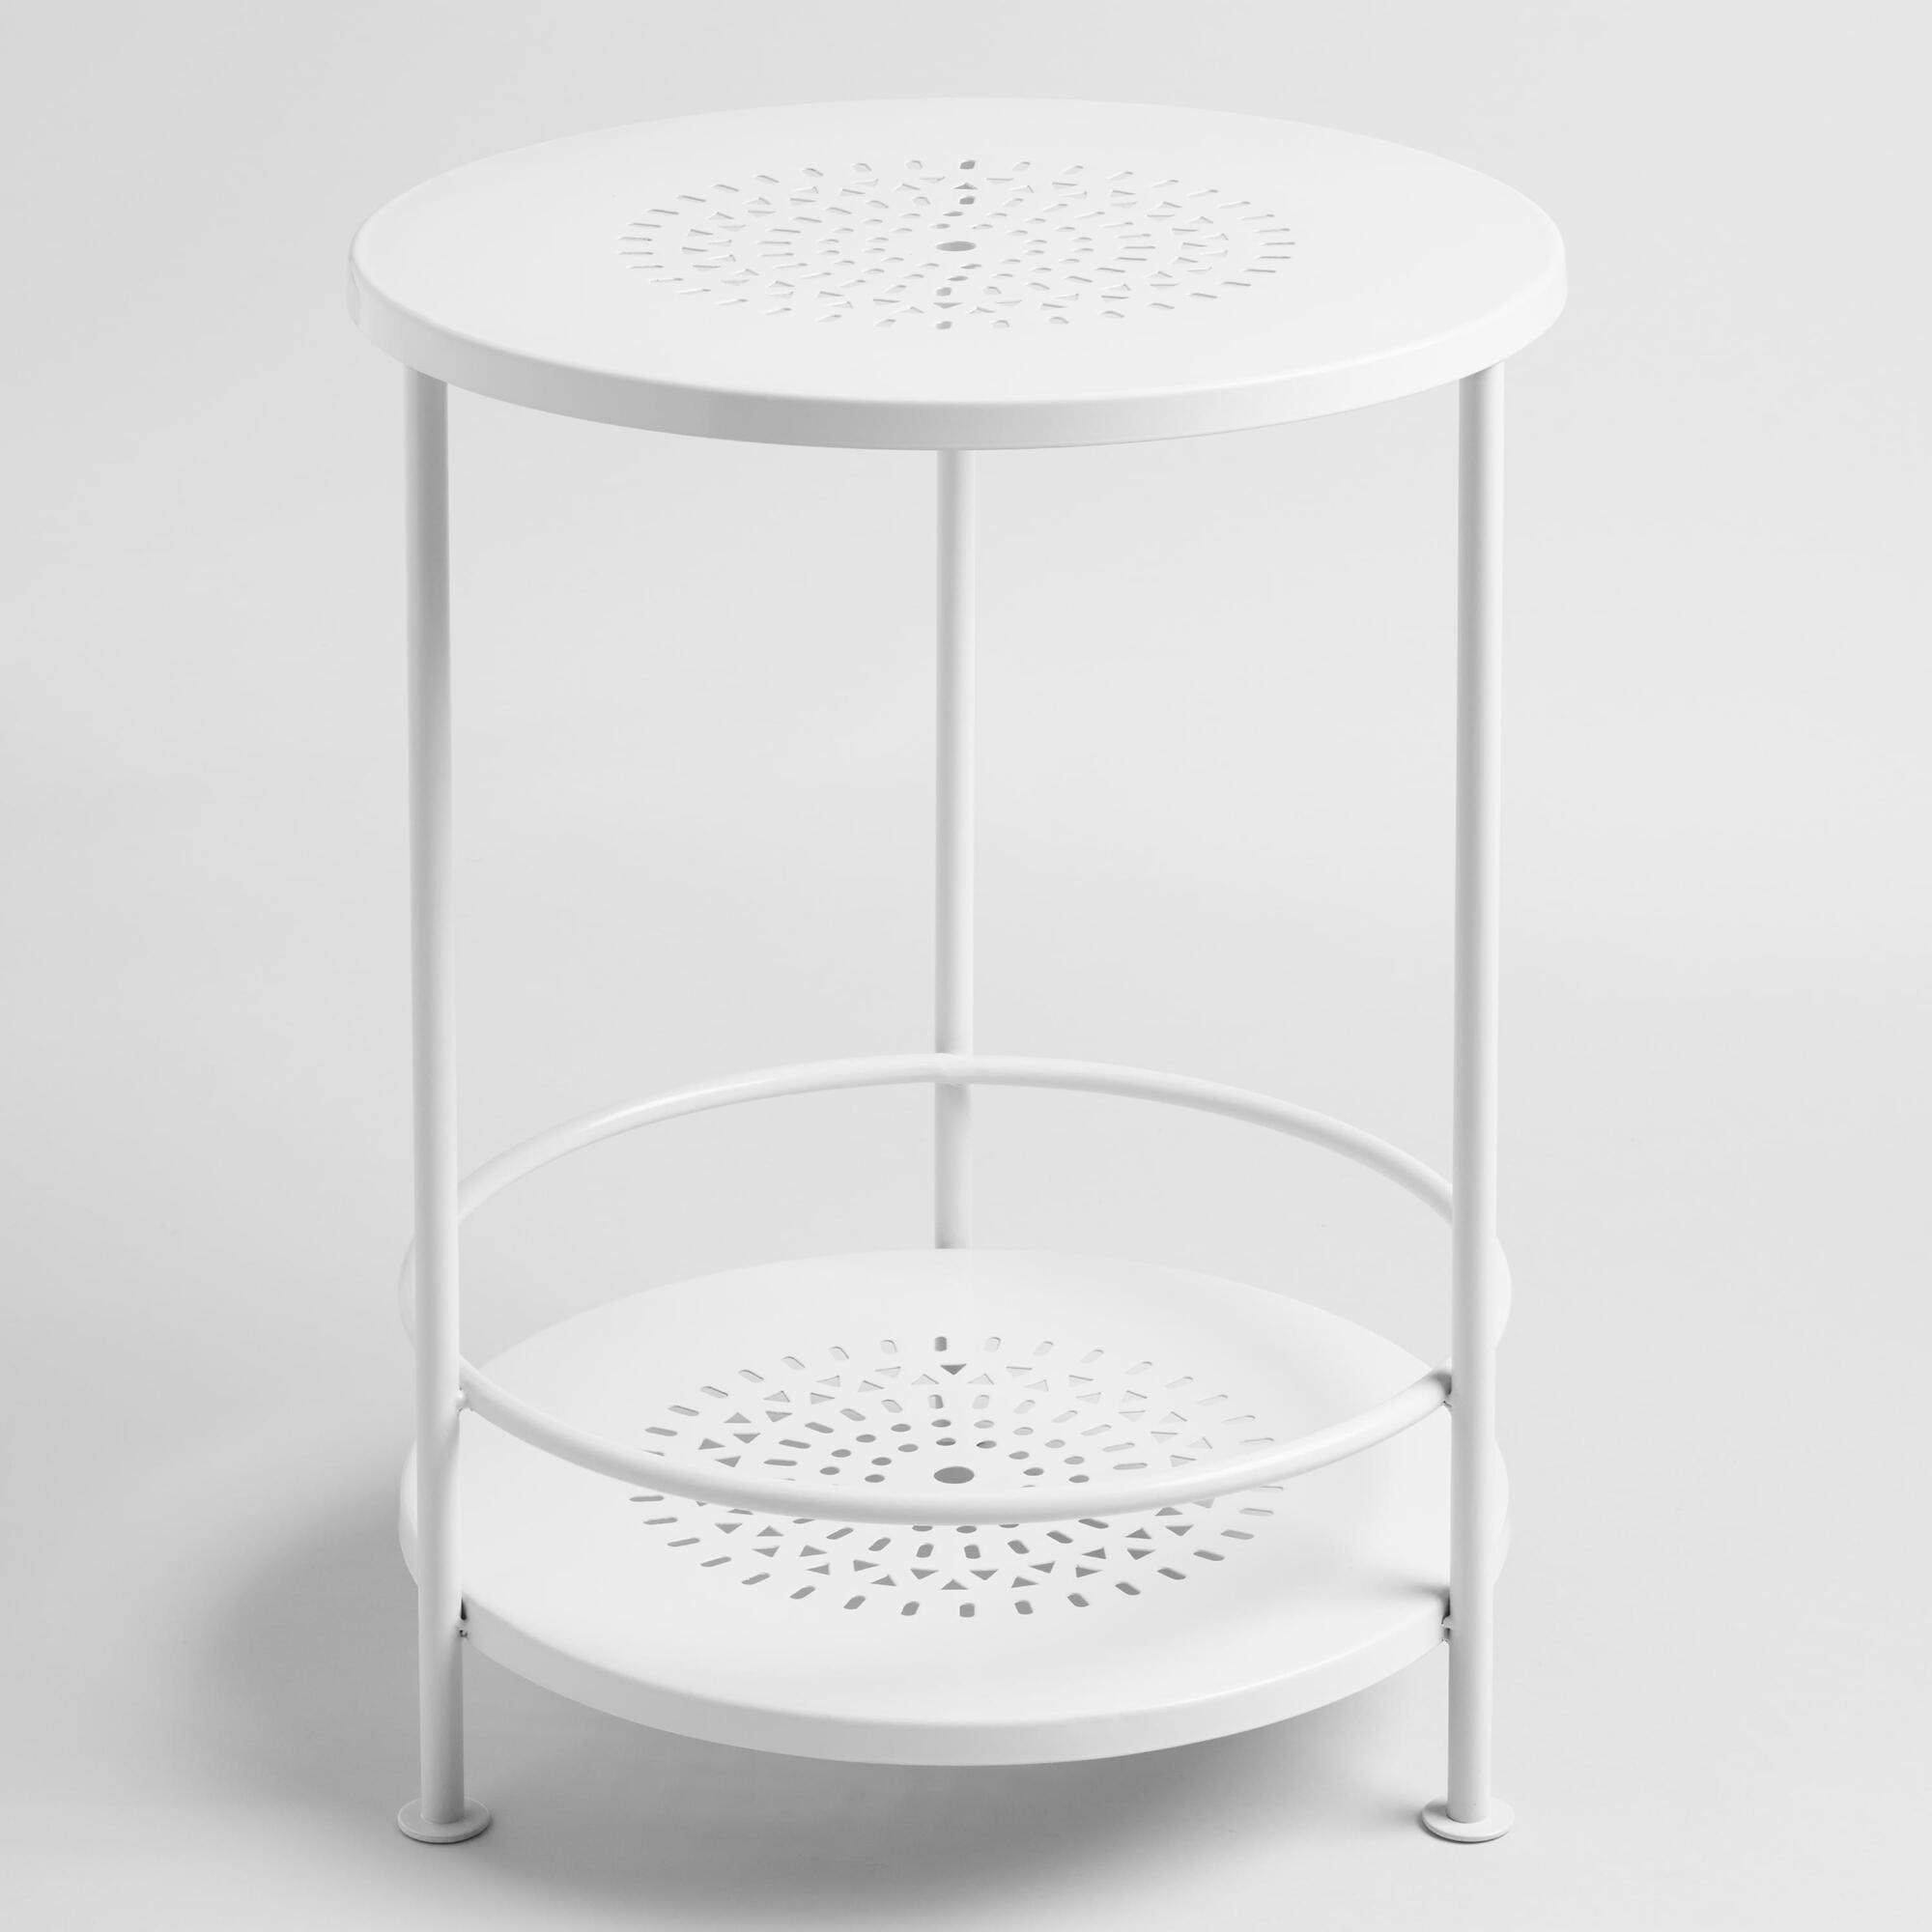 white metal marisol outdoor patio accent table world market dorm room ideas red side modern and glass coffee black dining set barn style pier one rugs clearance tiffany butterfly